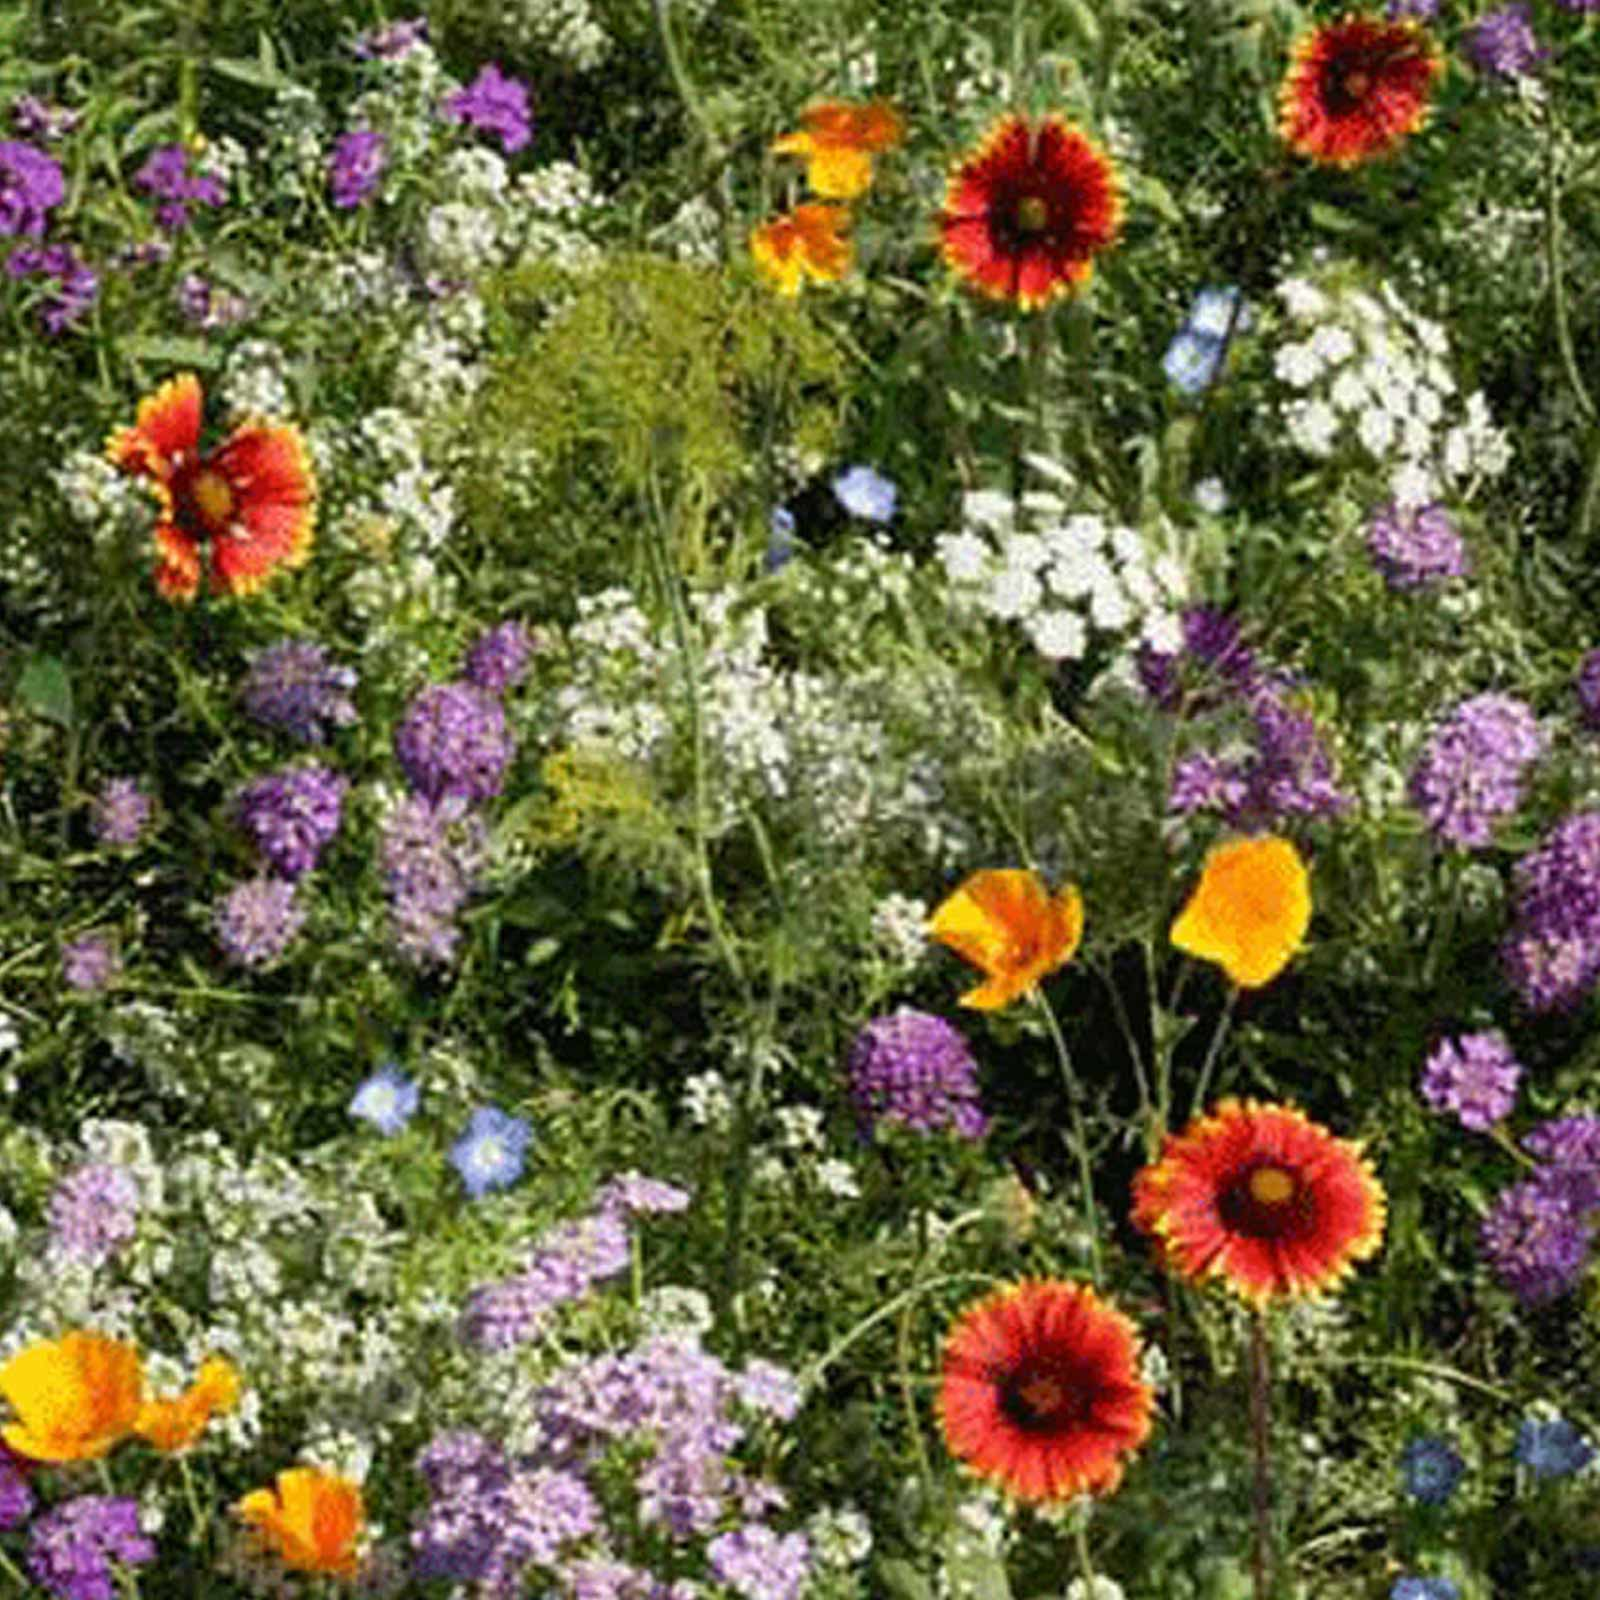 Low Growing Wildflower Seed Mix 4 Oz Mix Of Annual Perennial